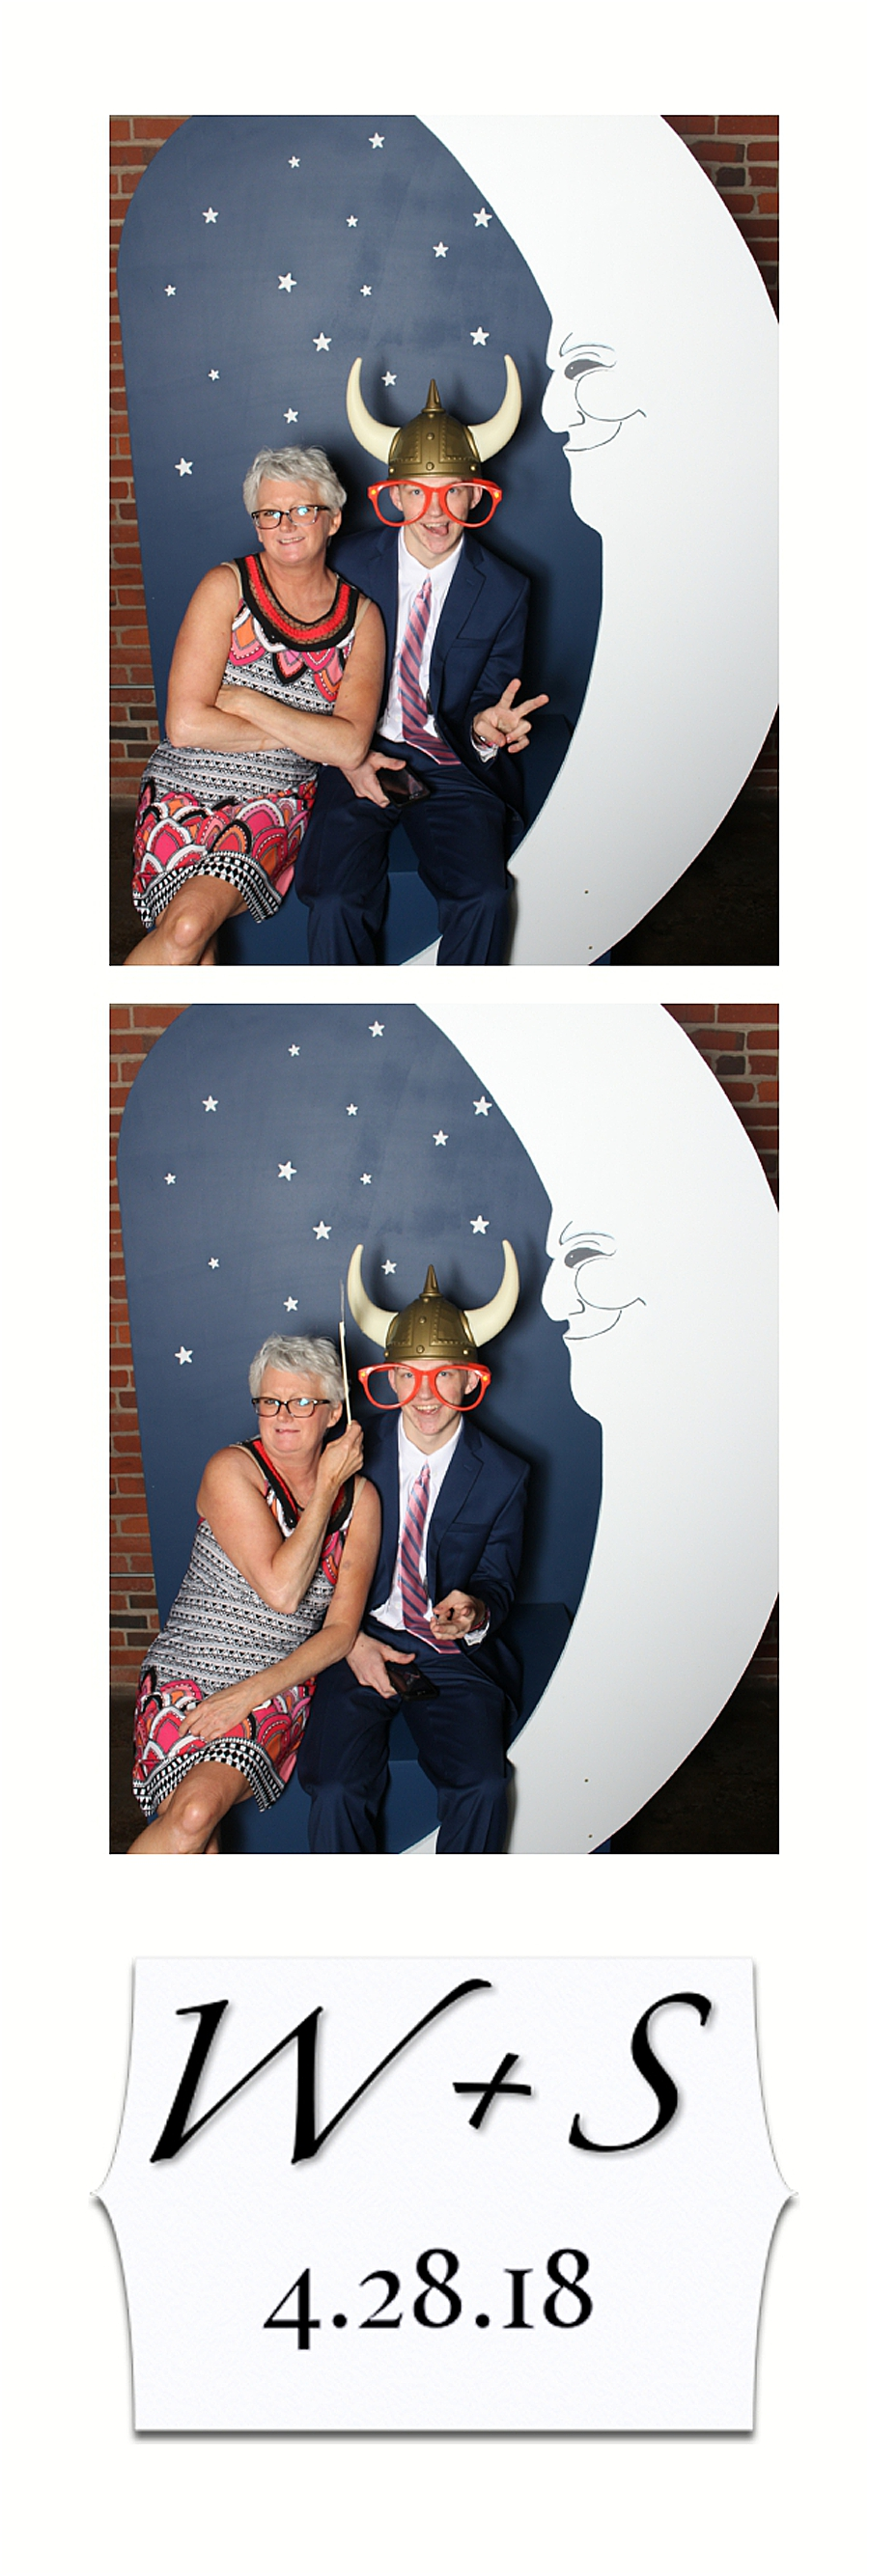 Knoxville Photo Booth_1680.jpg